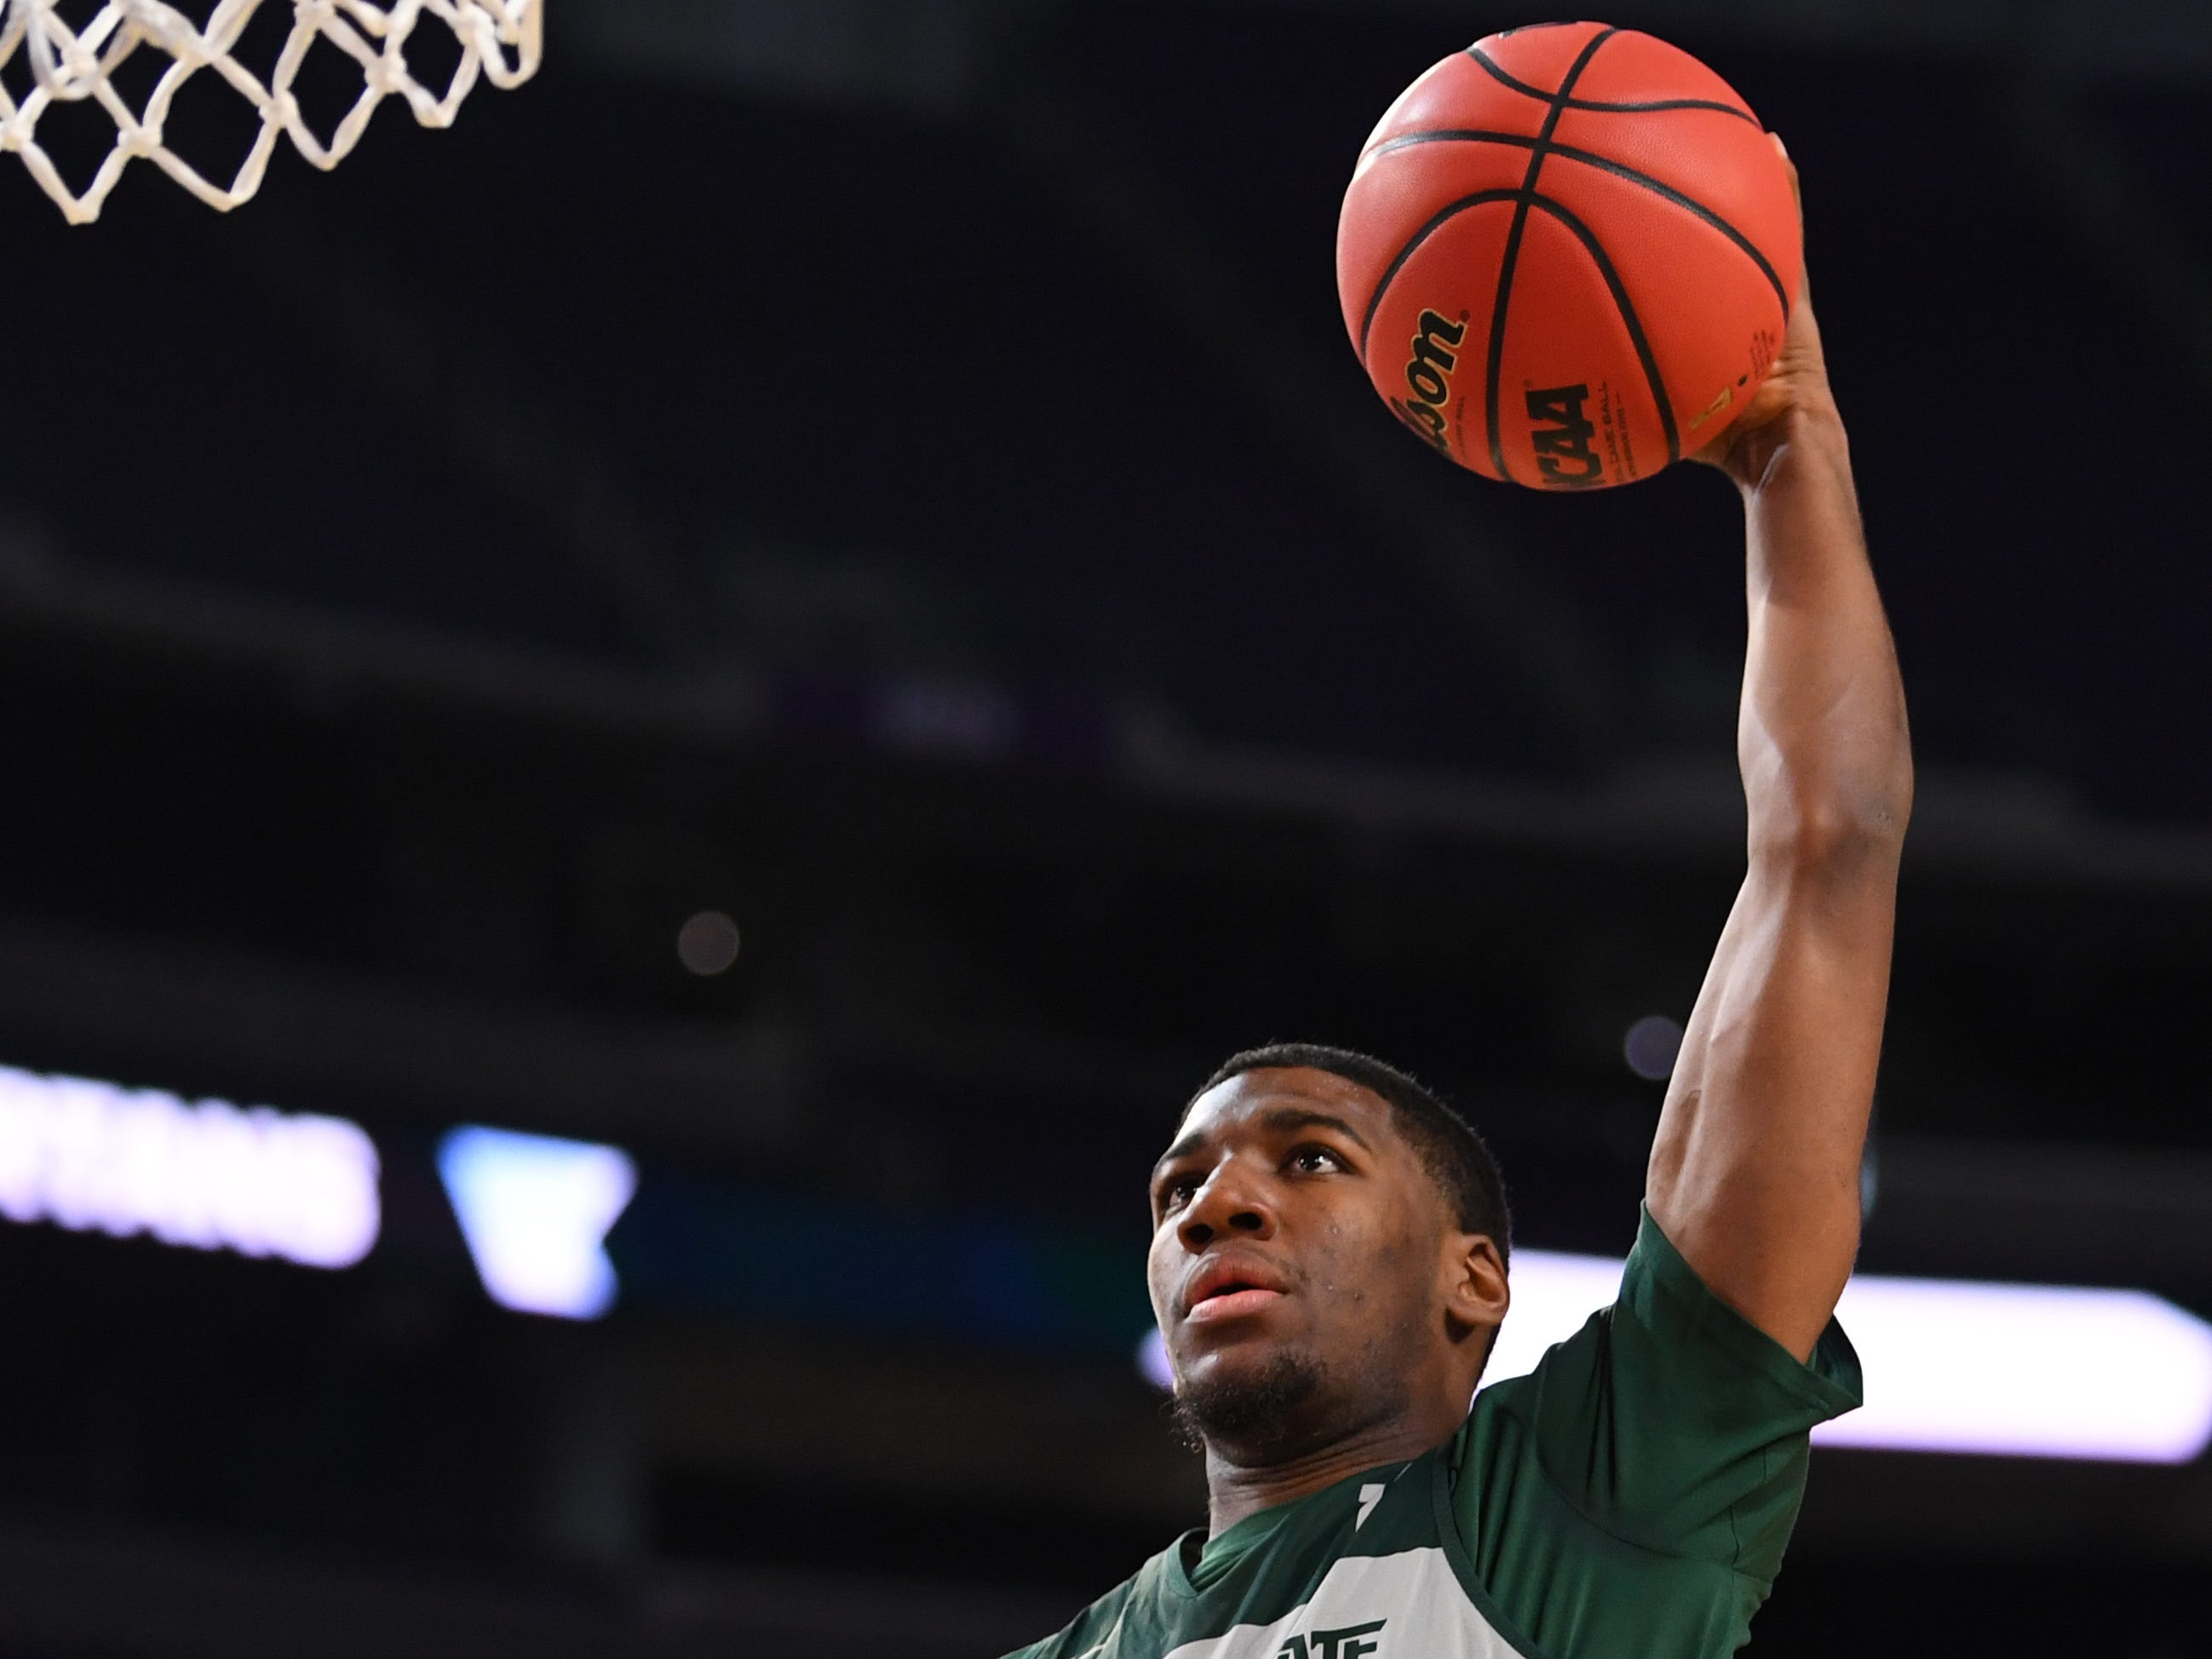 Apr 5, 2019; Minneapolis, MN, USA; Michigan State Spartans forward Aaron Henry (11) shoots during practice for the 2019 men's Final Four at US Bank Stadium. Mandatory Credit: Bob Donnan-USA TODAY Sports